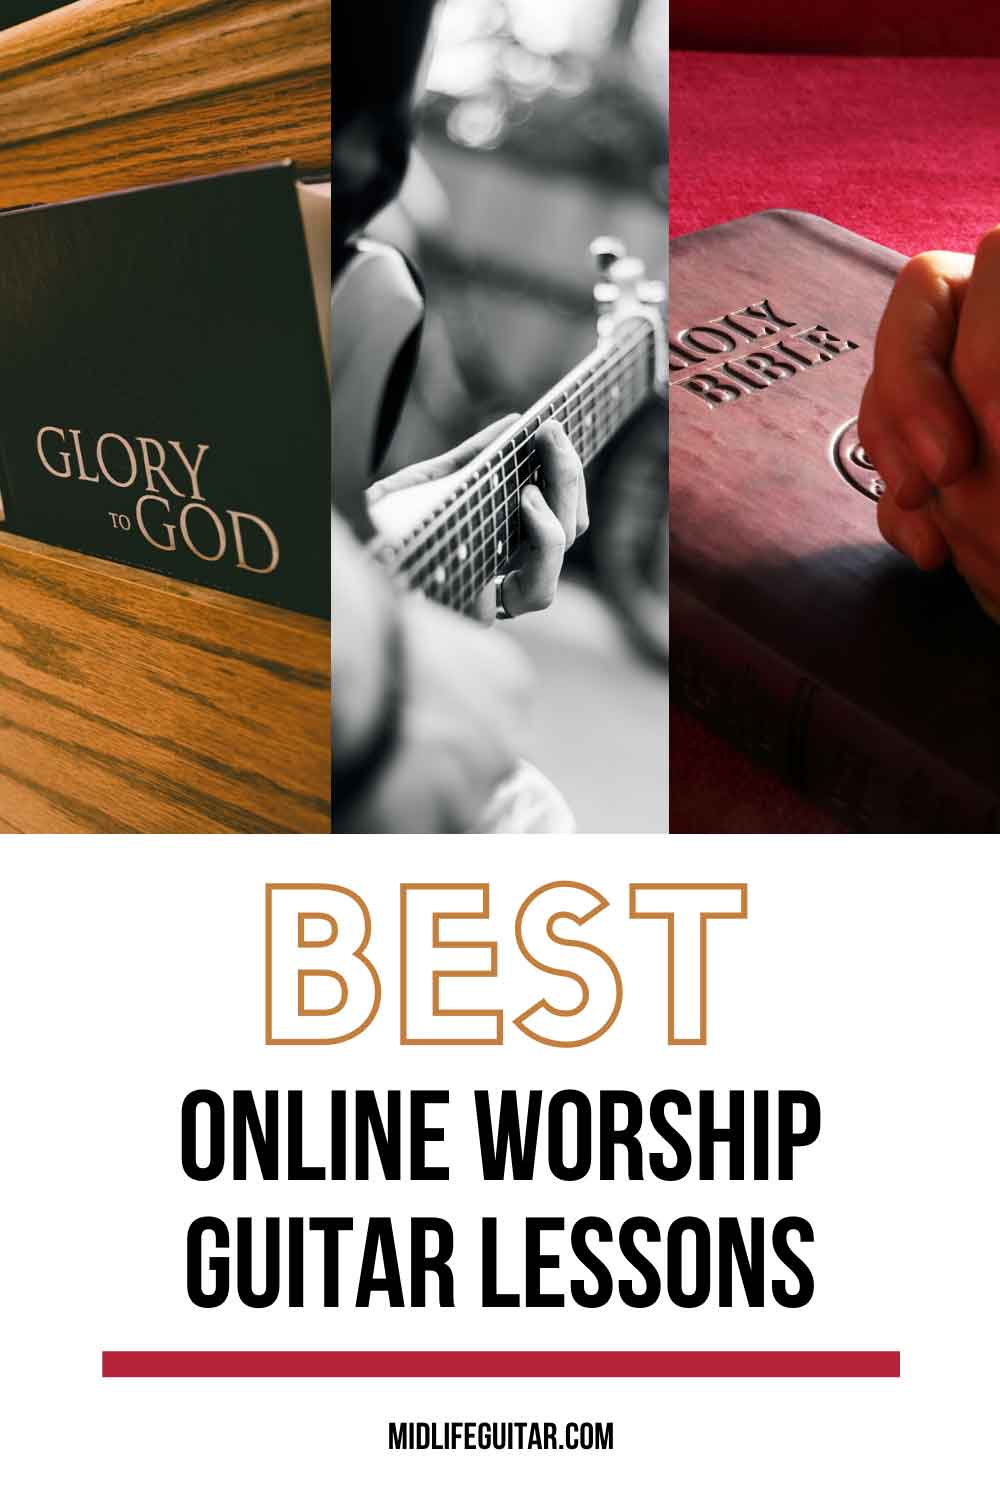 Best Online Worship Guitar Lessons